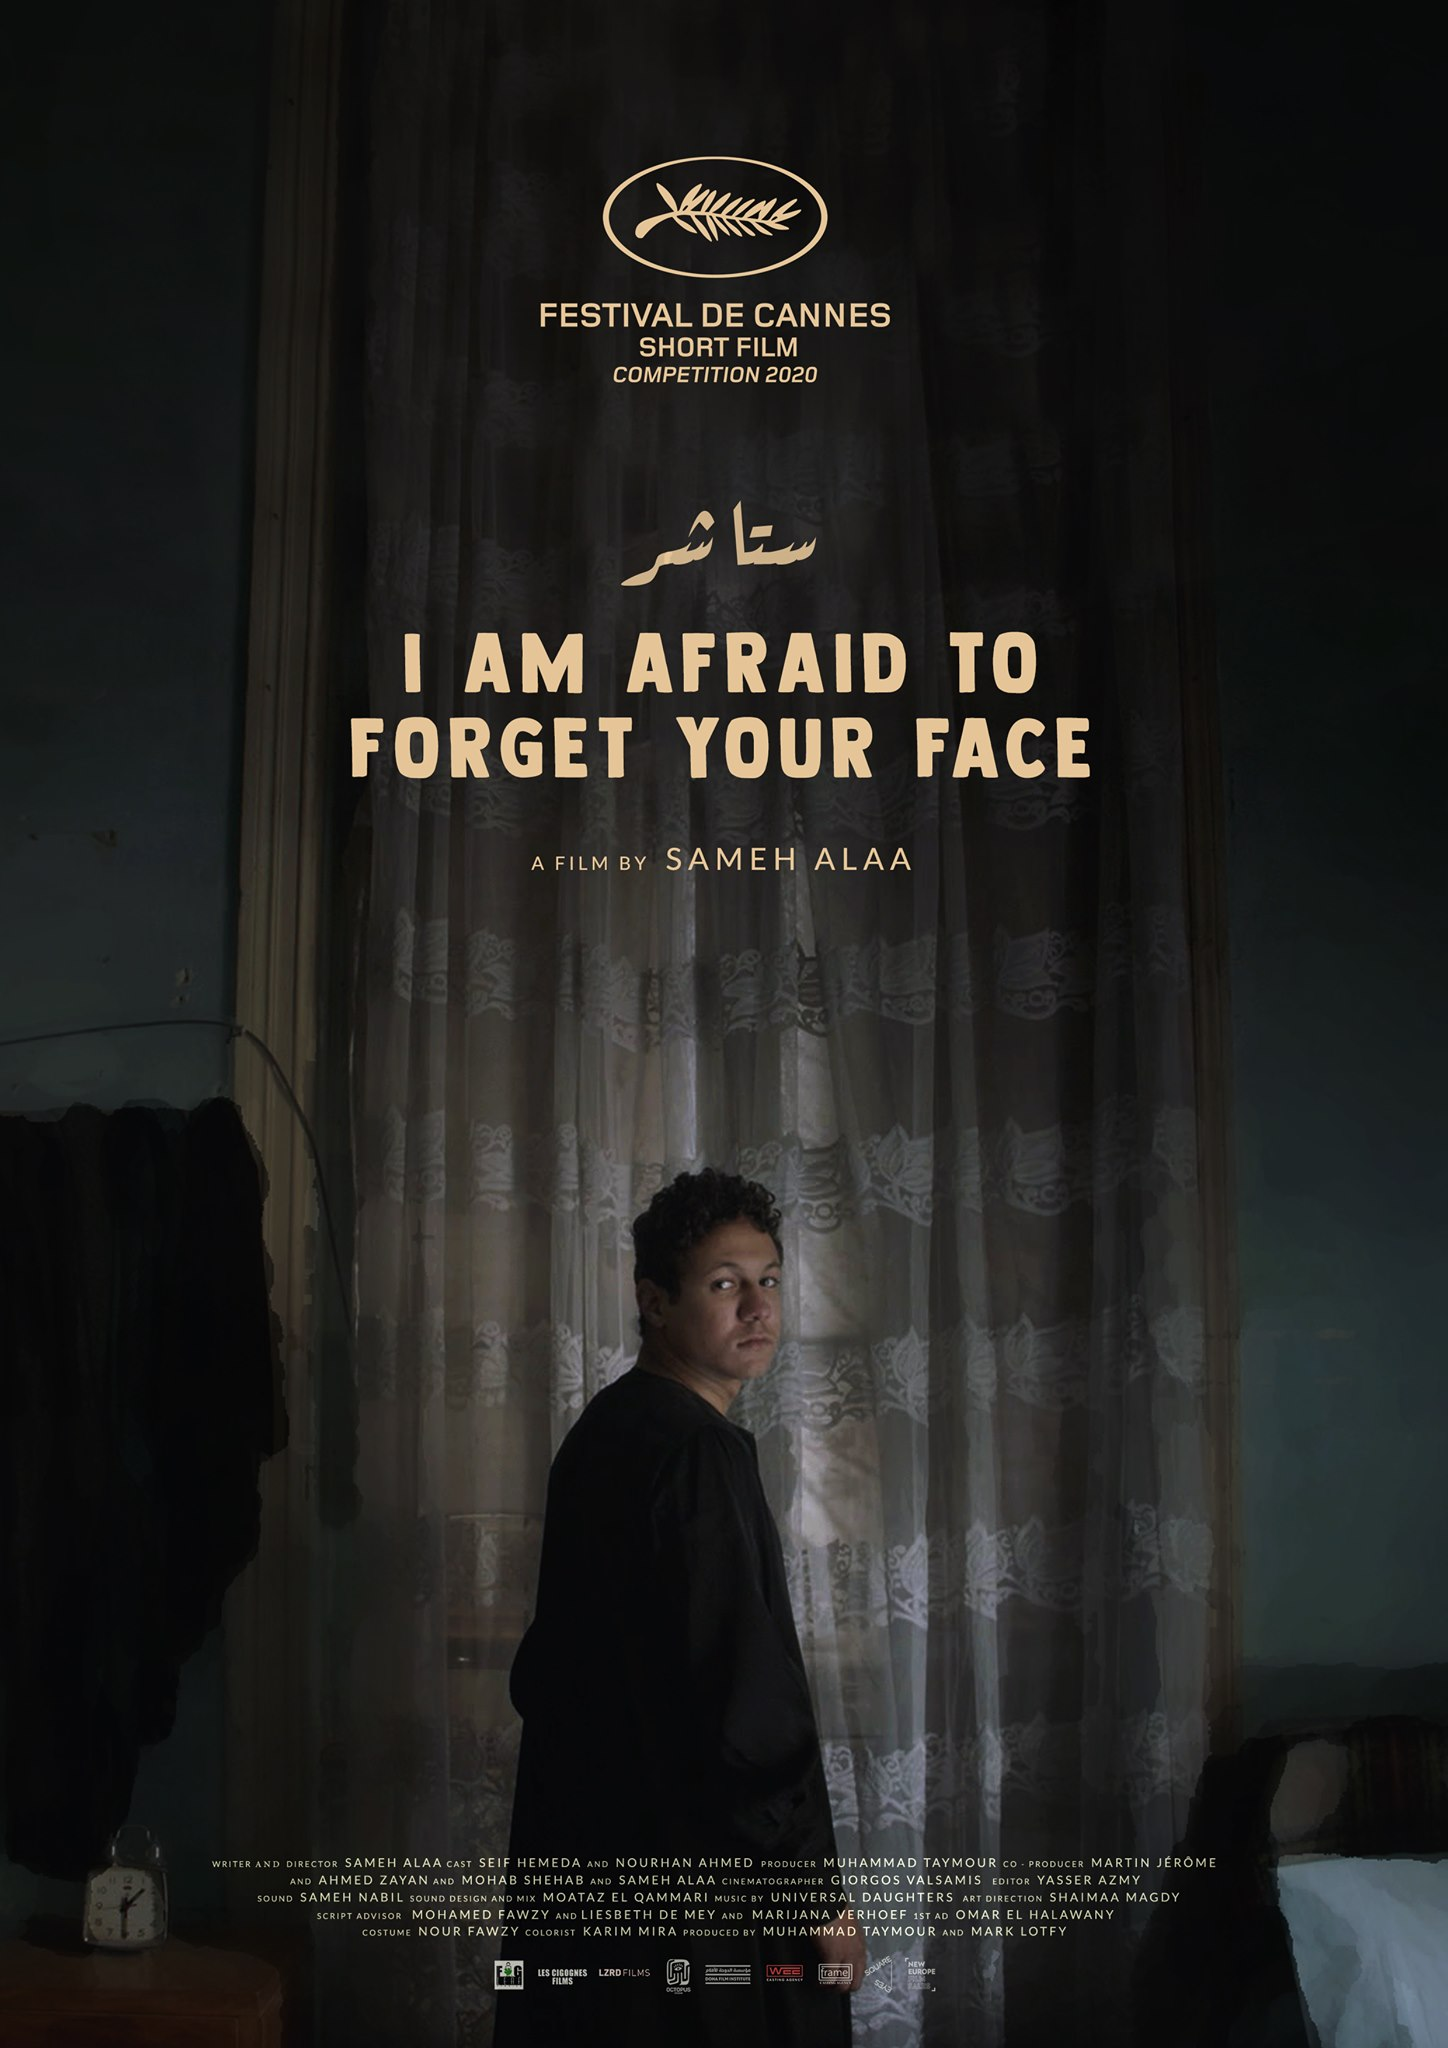 فيلم ستاشر - I Am Afraid to Forget Your Face